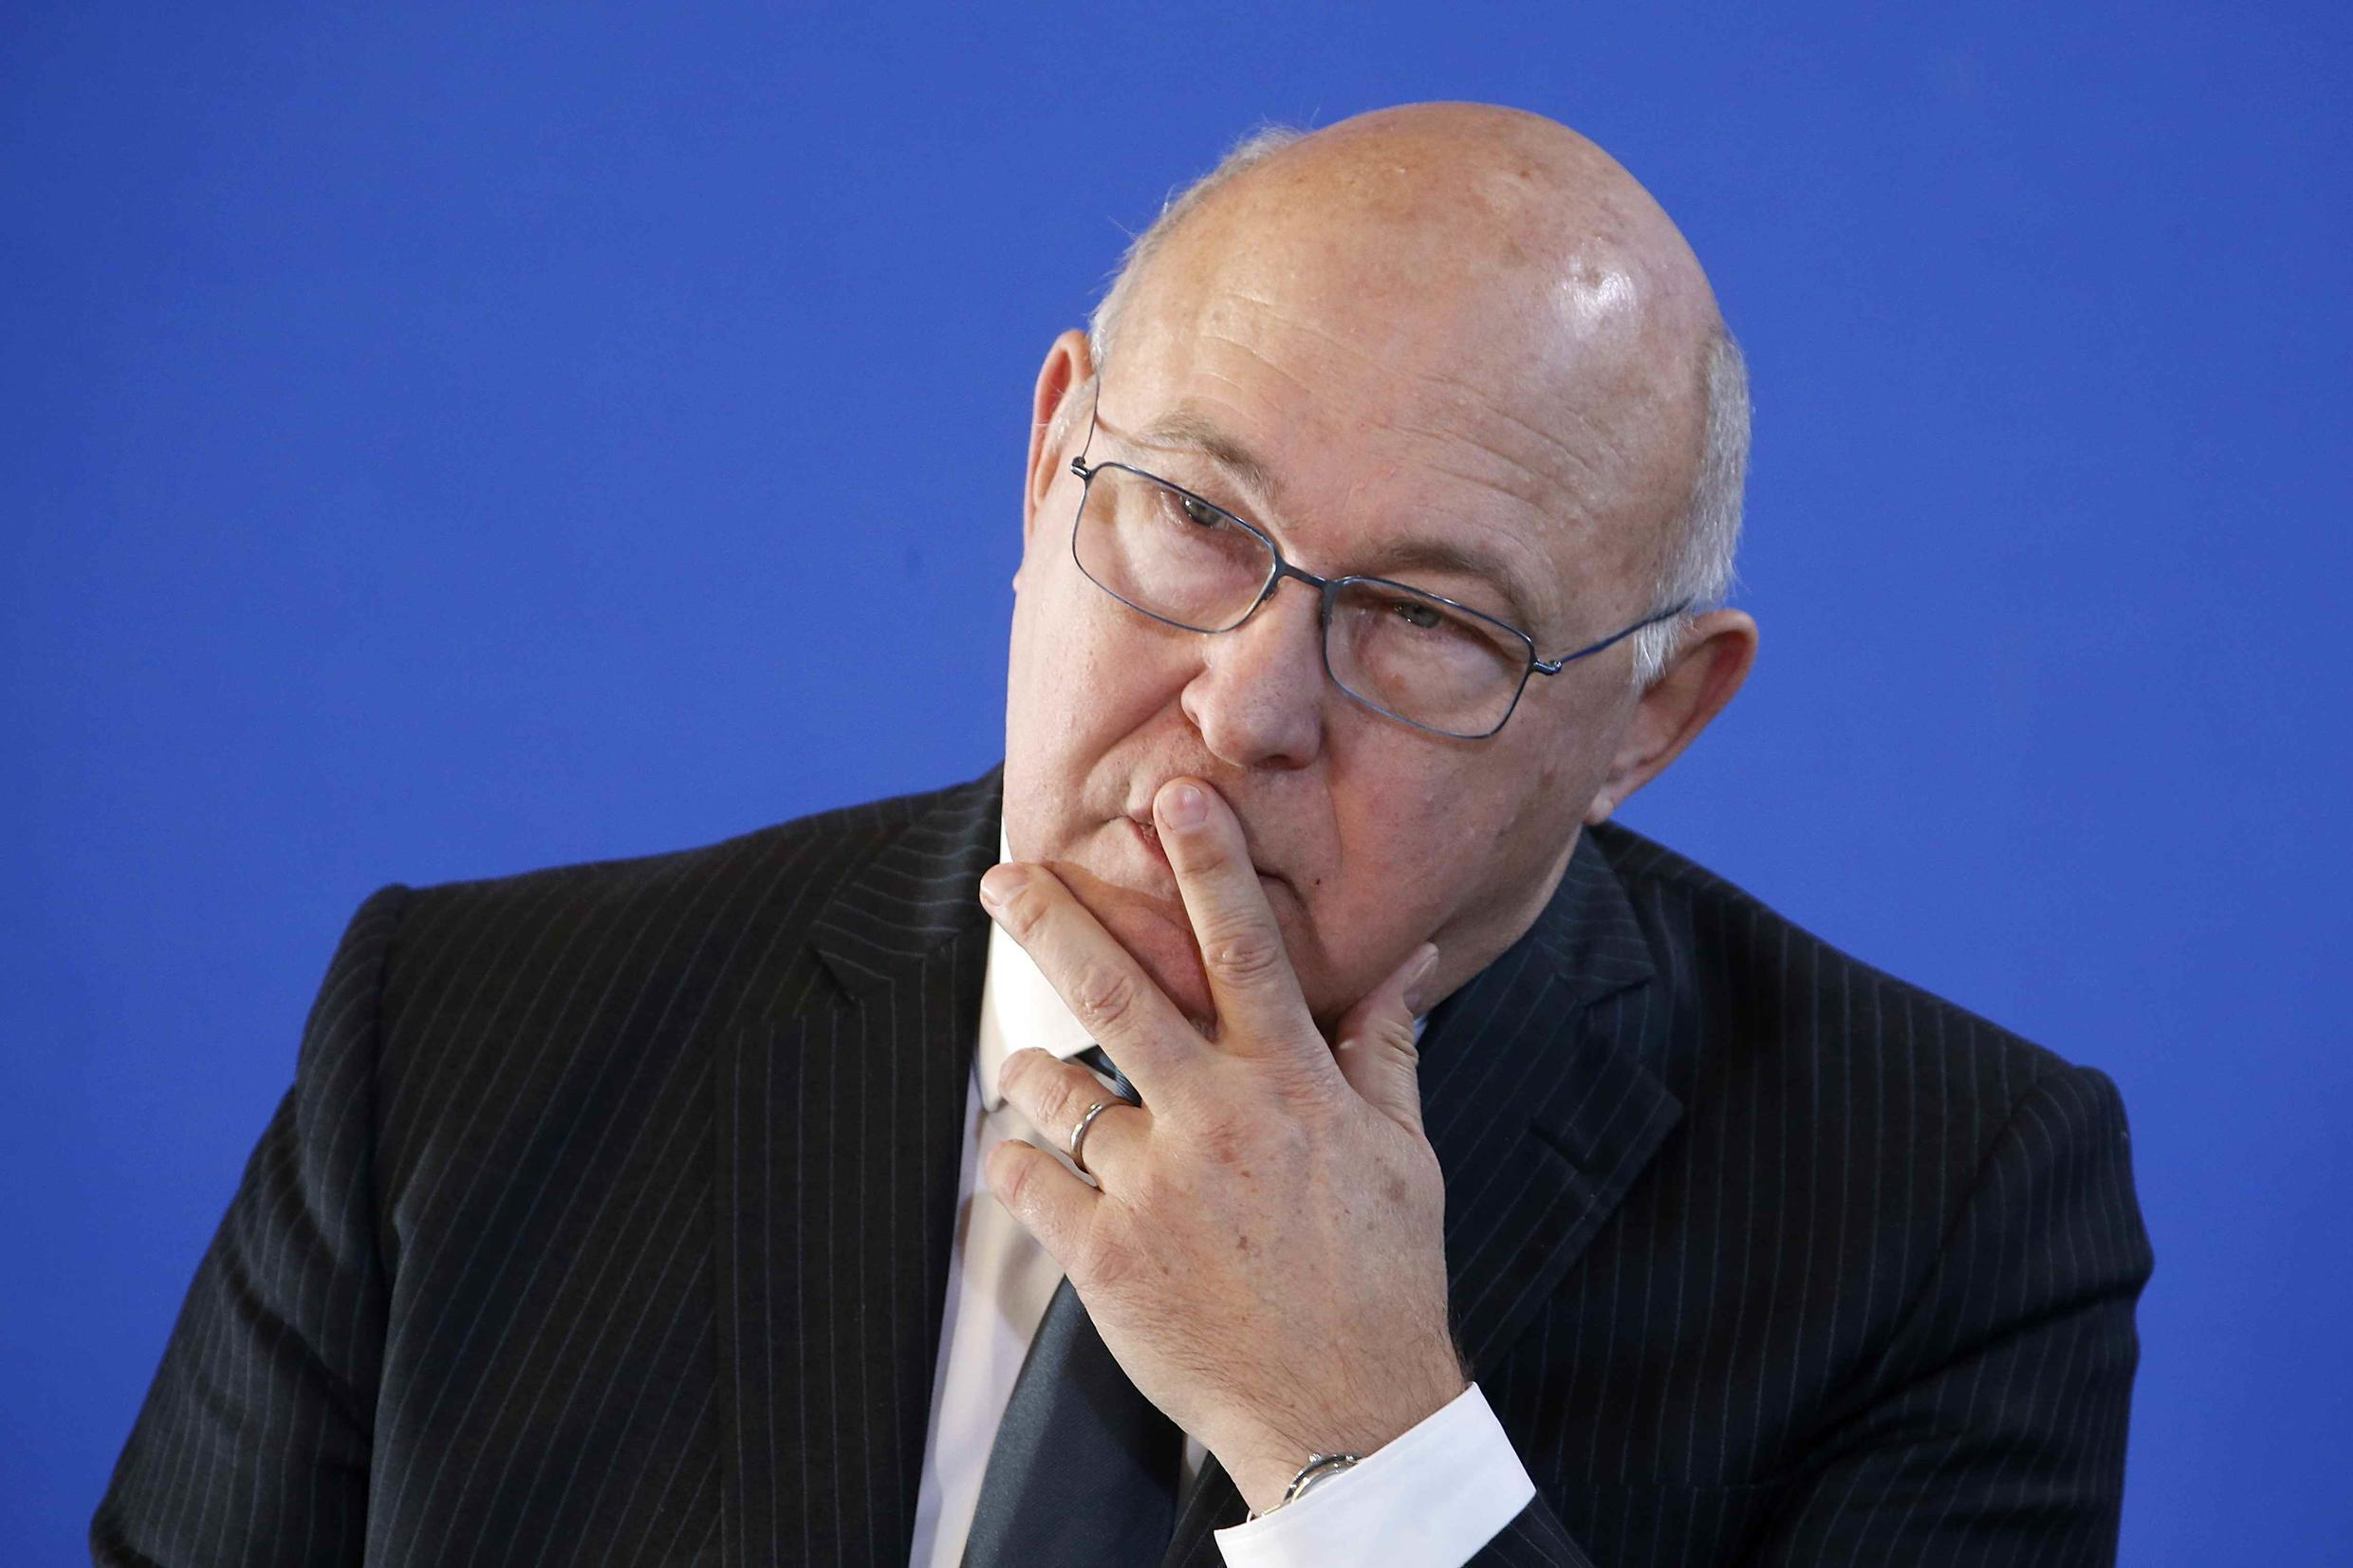 Finance minister Michel Sapin claims French companies would be undermined by the proposed tax evasion move